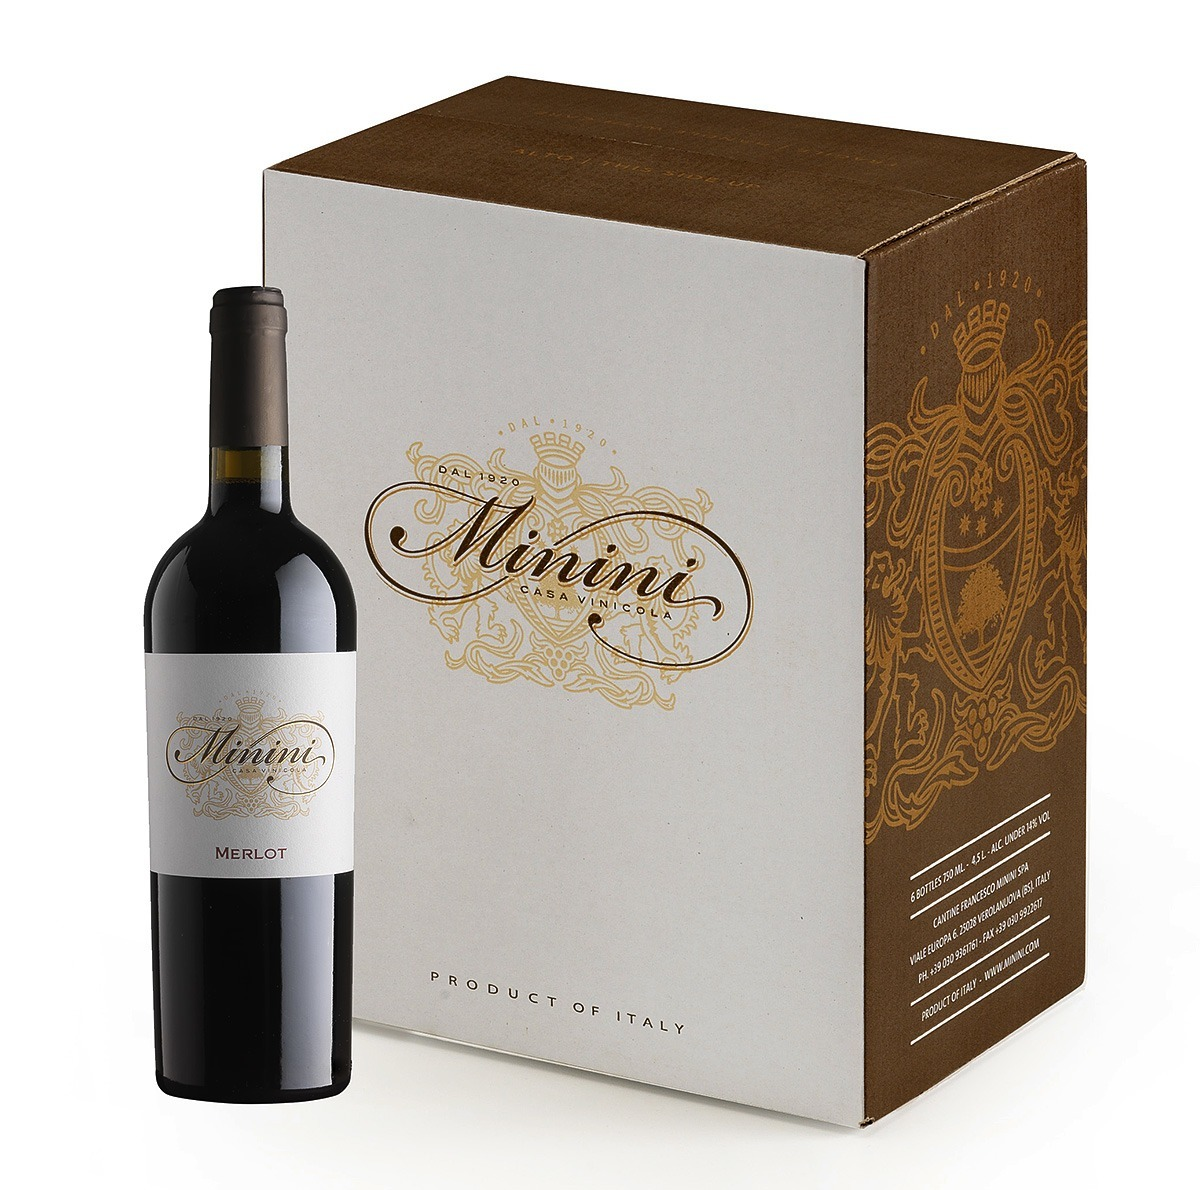 Minini wine label